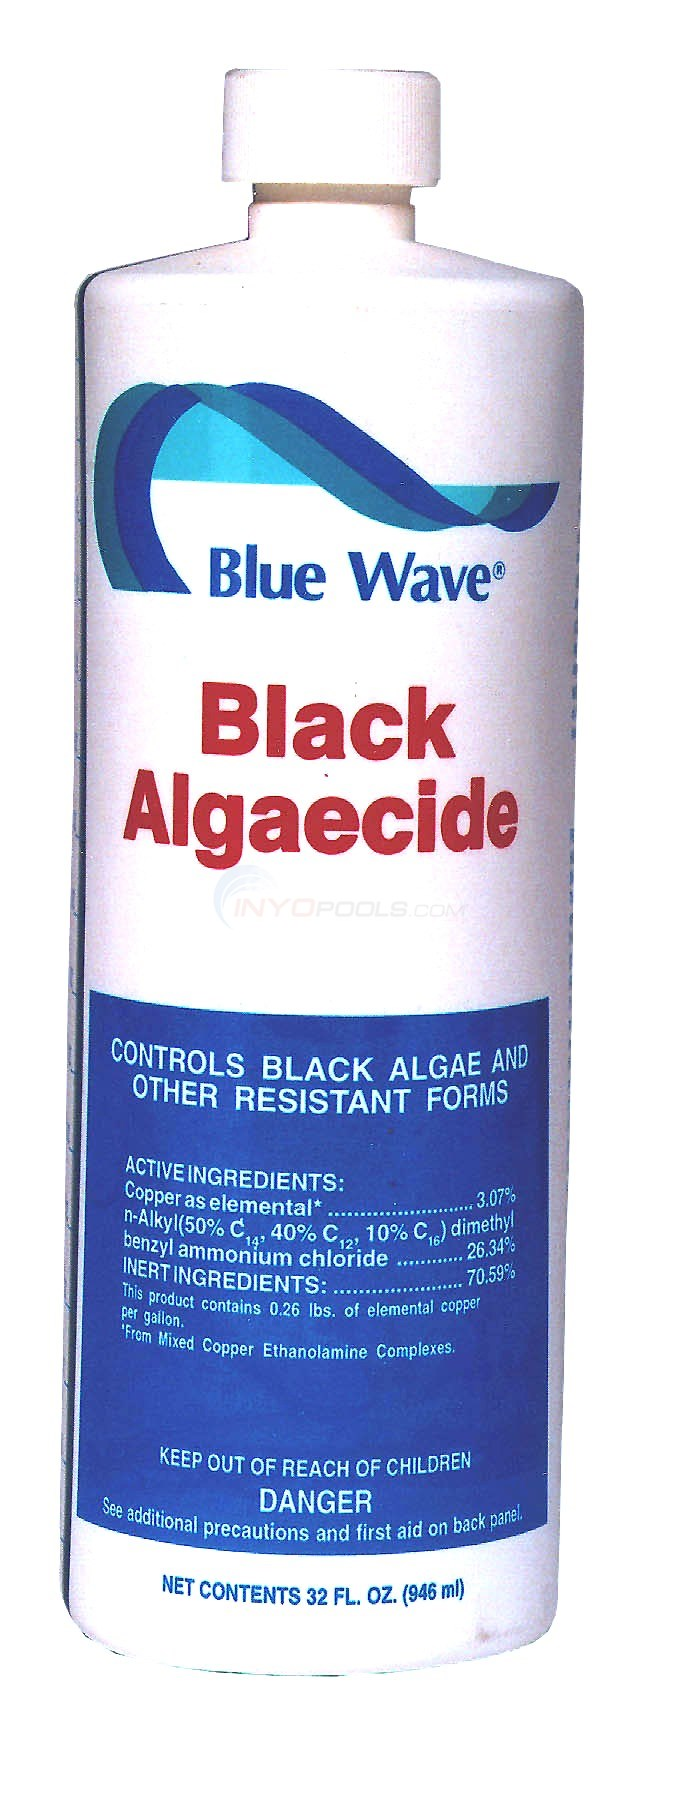 Blue Wave Black Algaecide 1 Quart - NY100